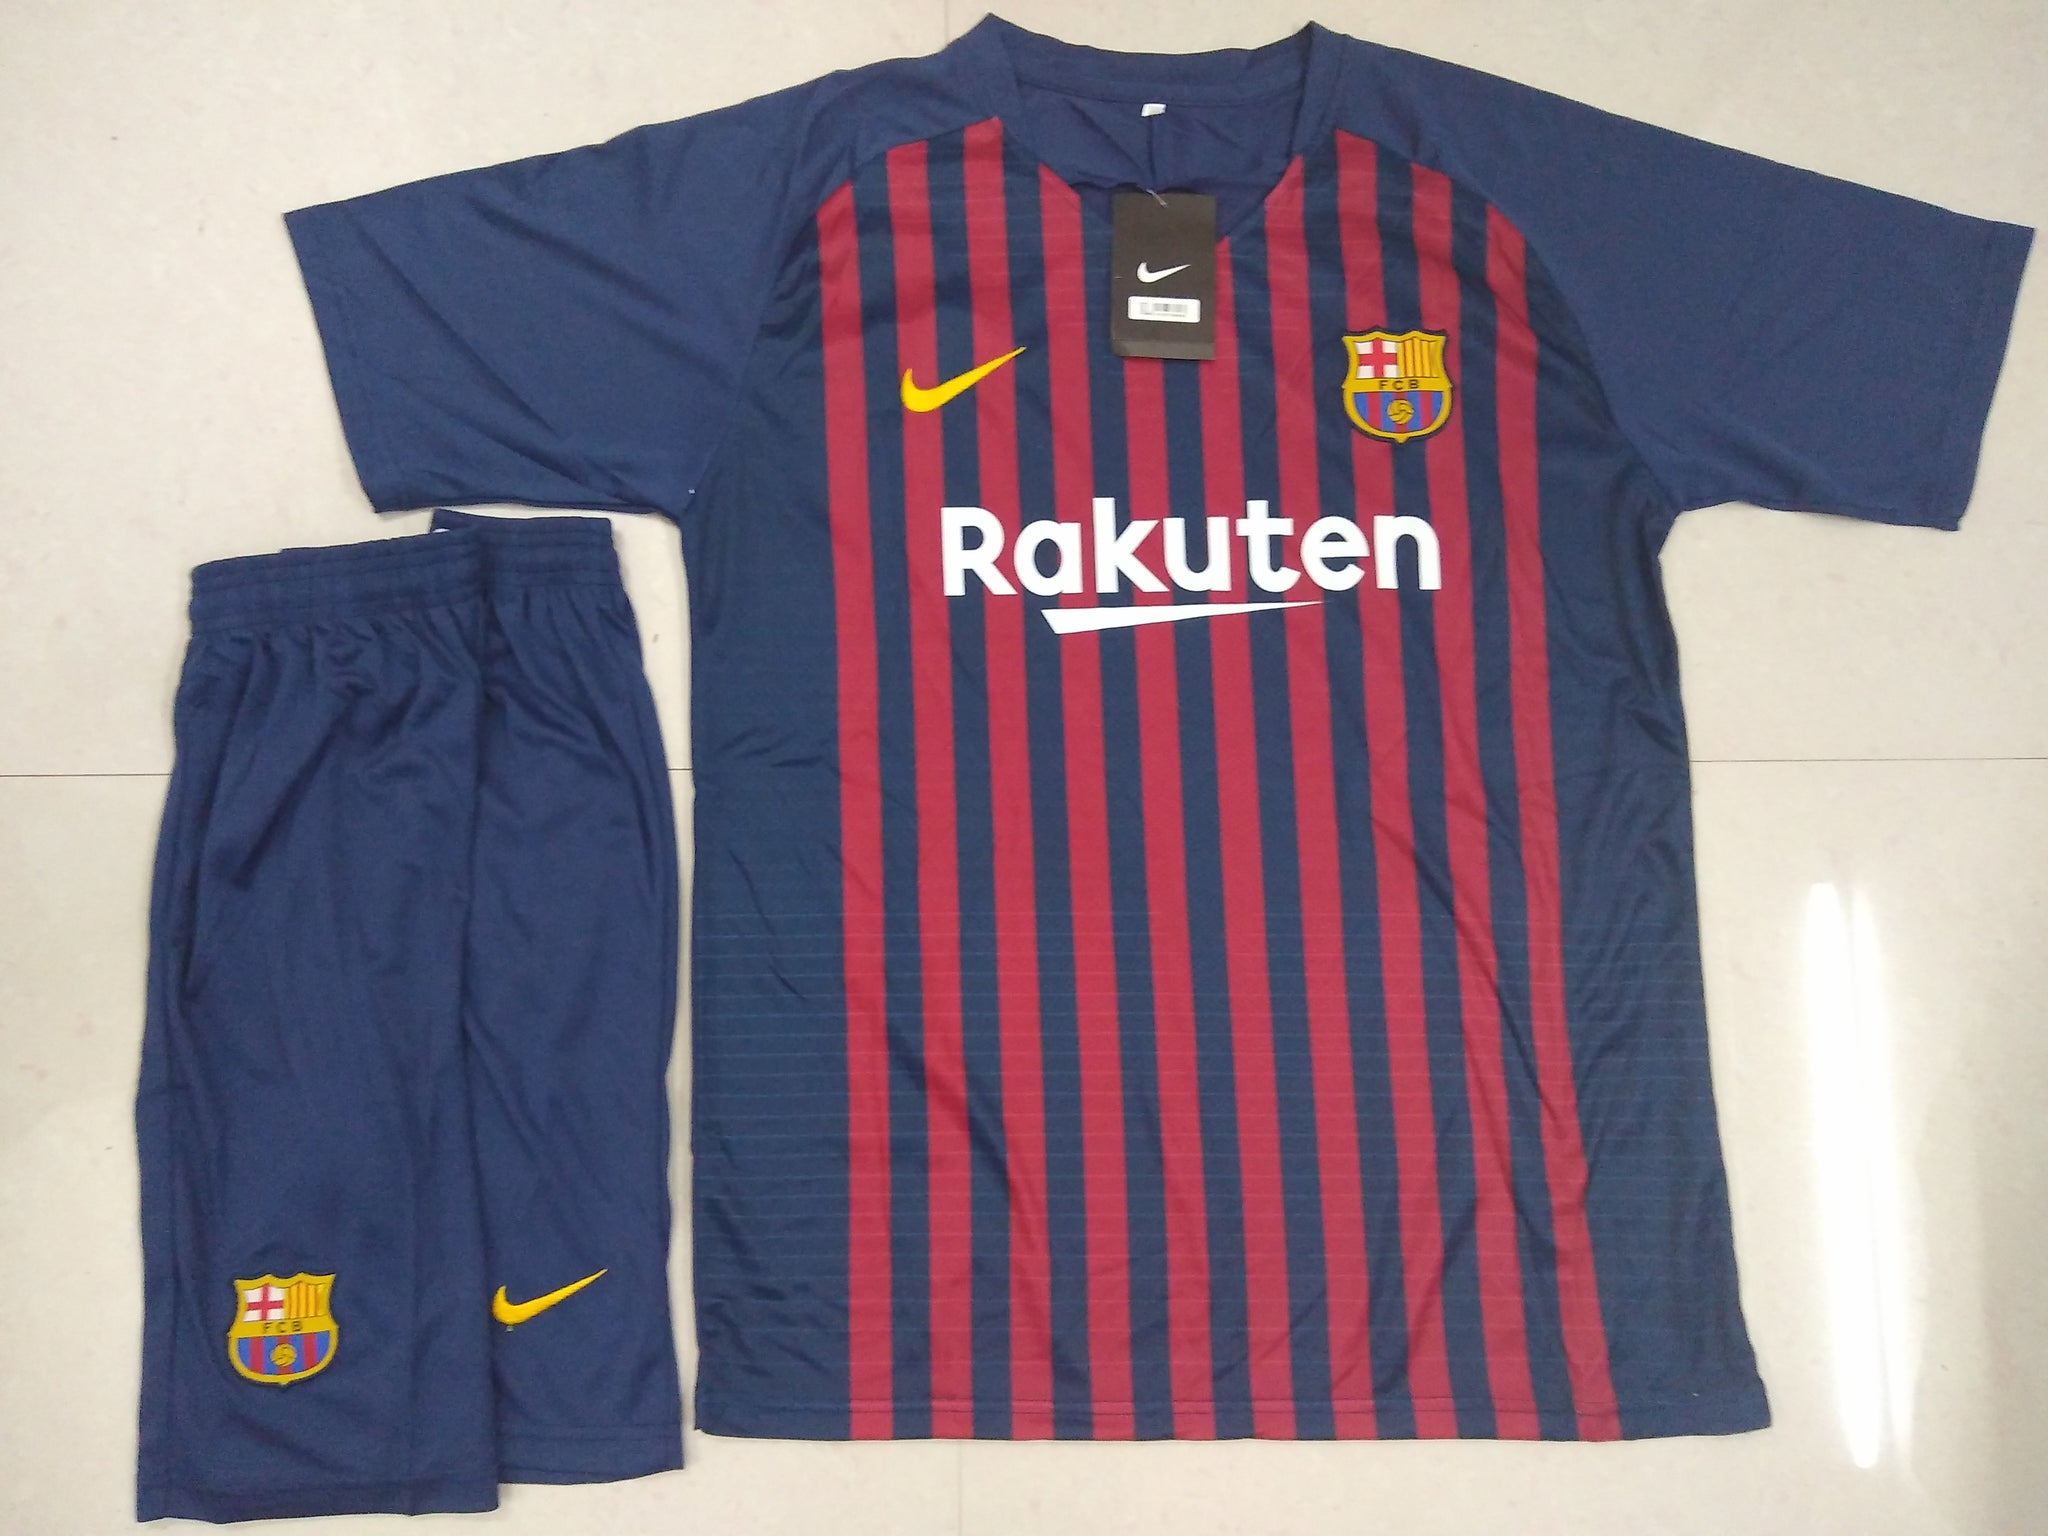 863ae8ffc21 Barcelona Football Jersey New Season 2018-19 kit online India ...